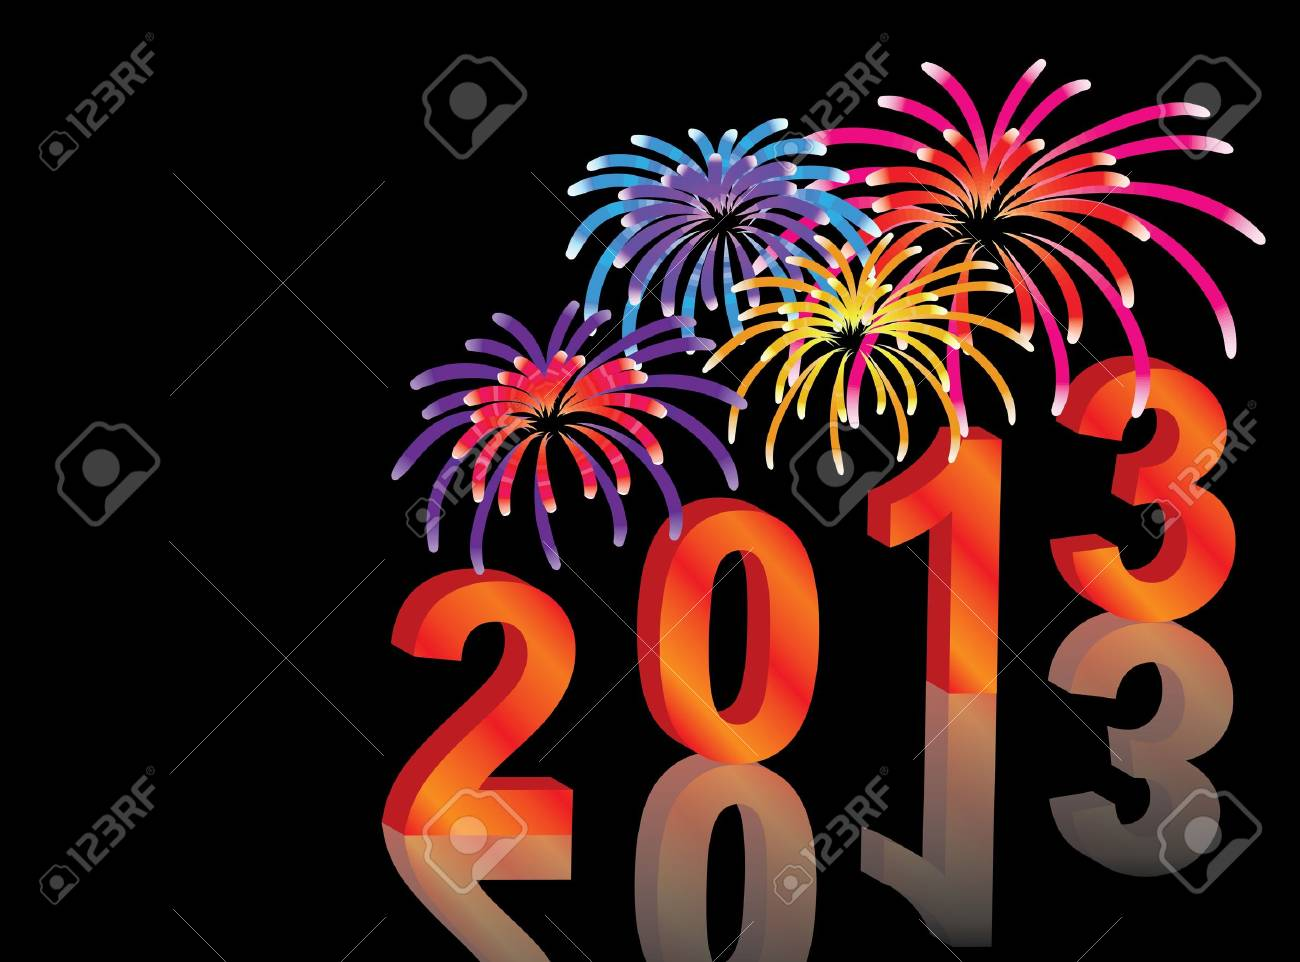 new year 2013 vector background with fireworks Stock Vector - 12552411